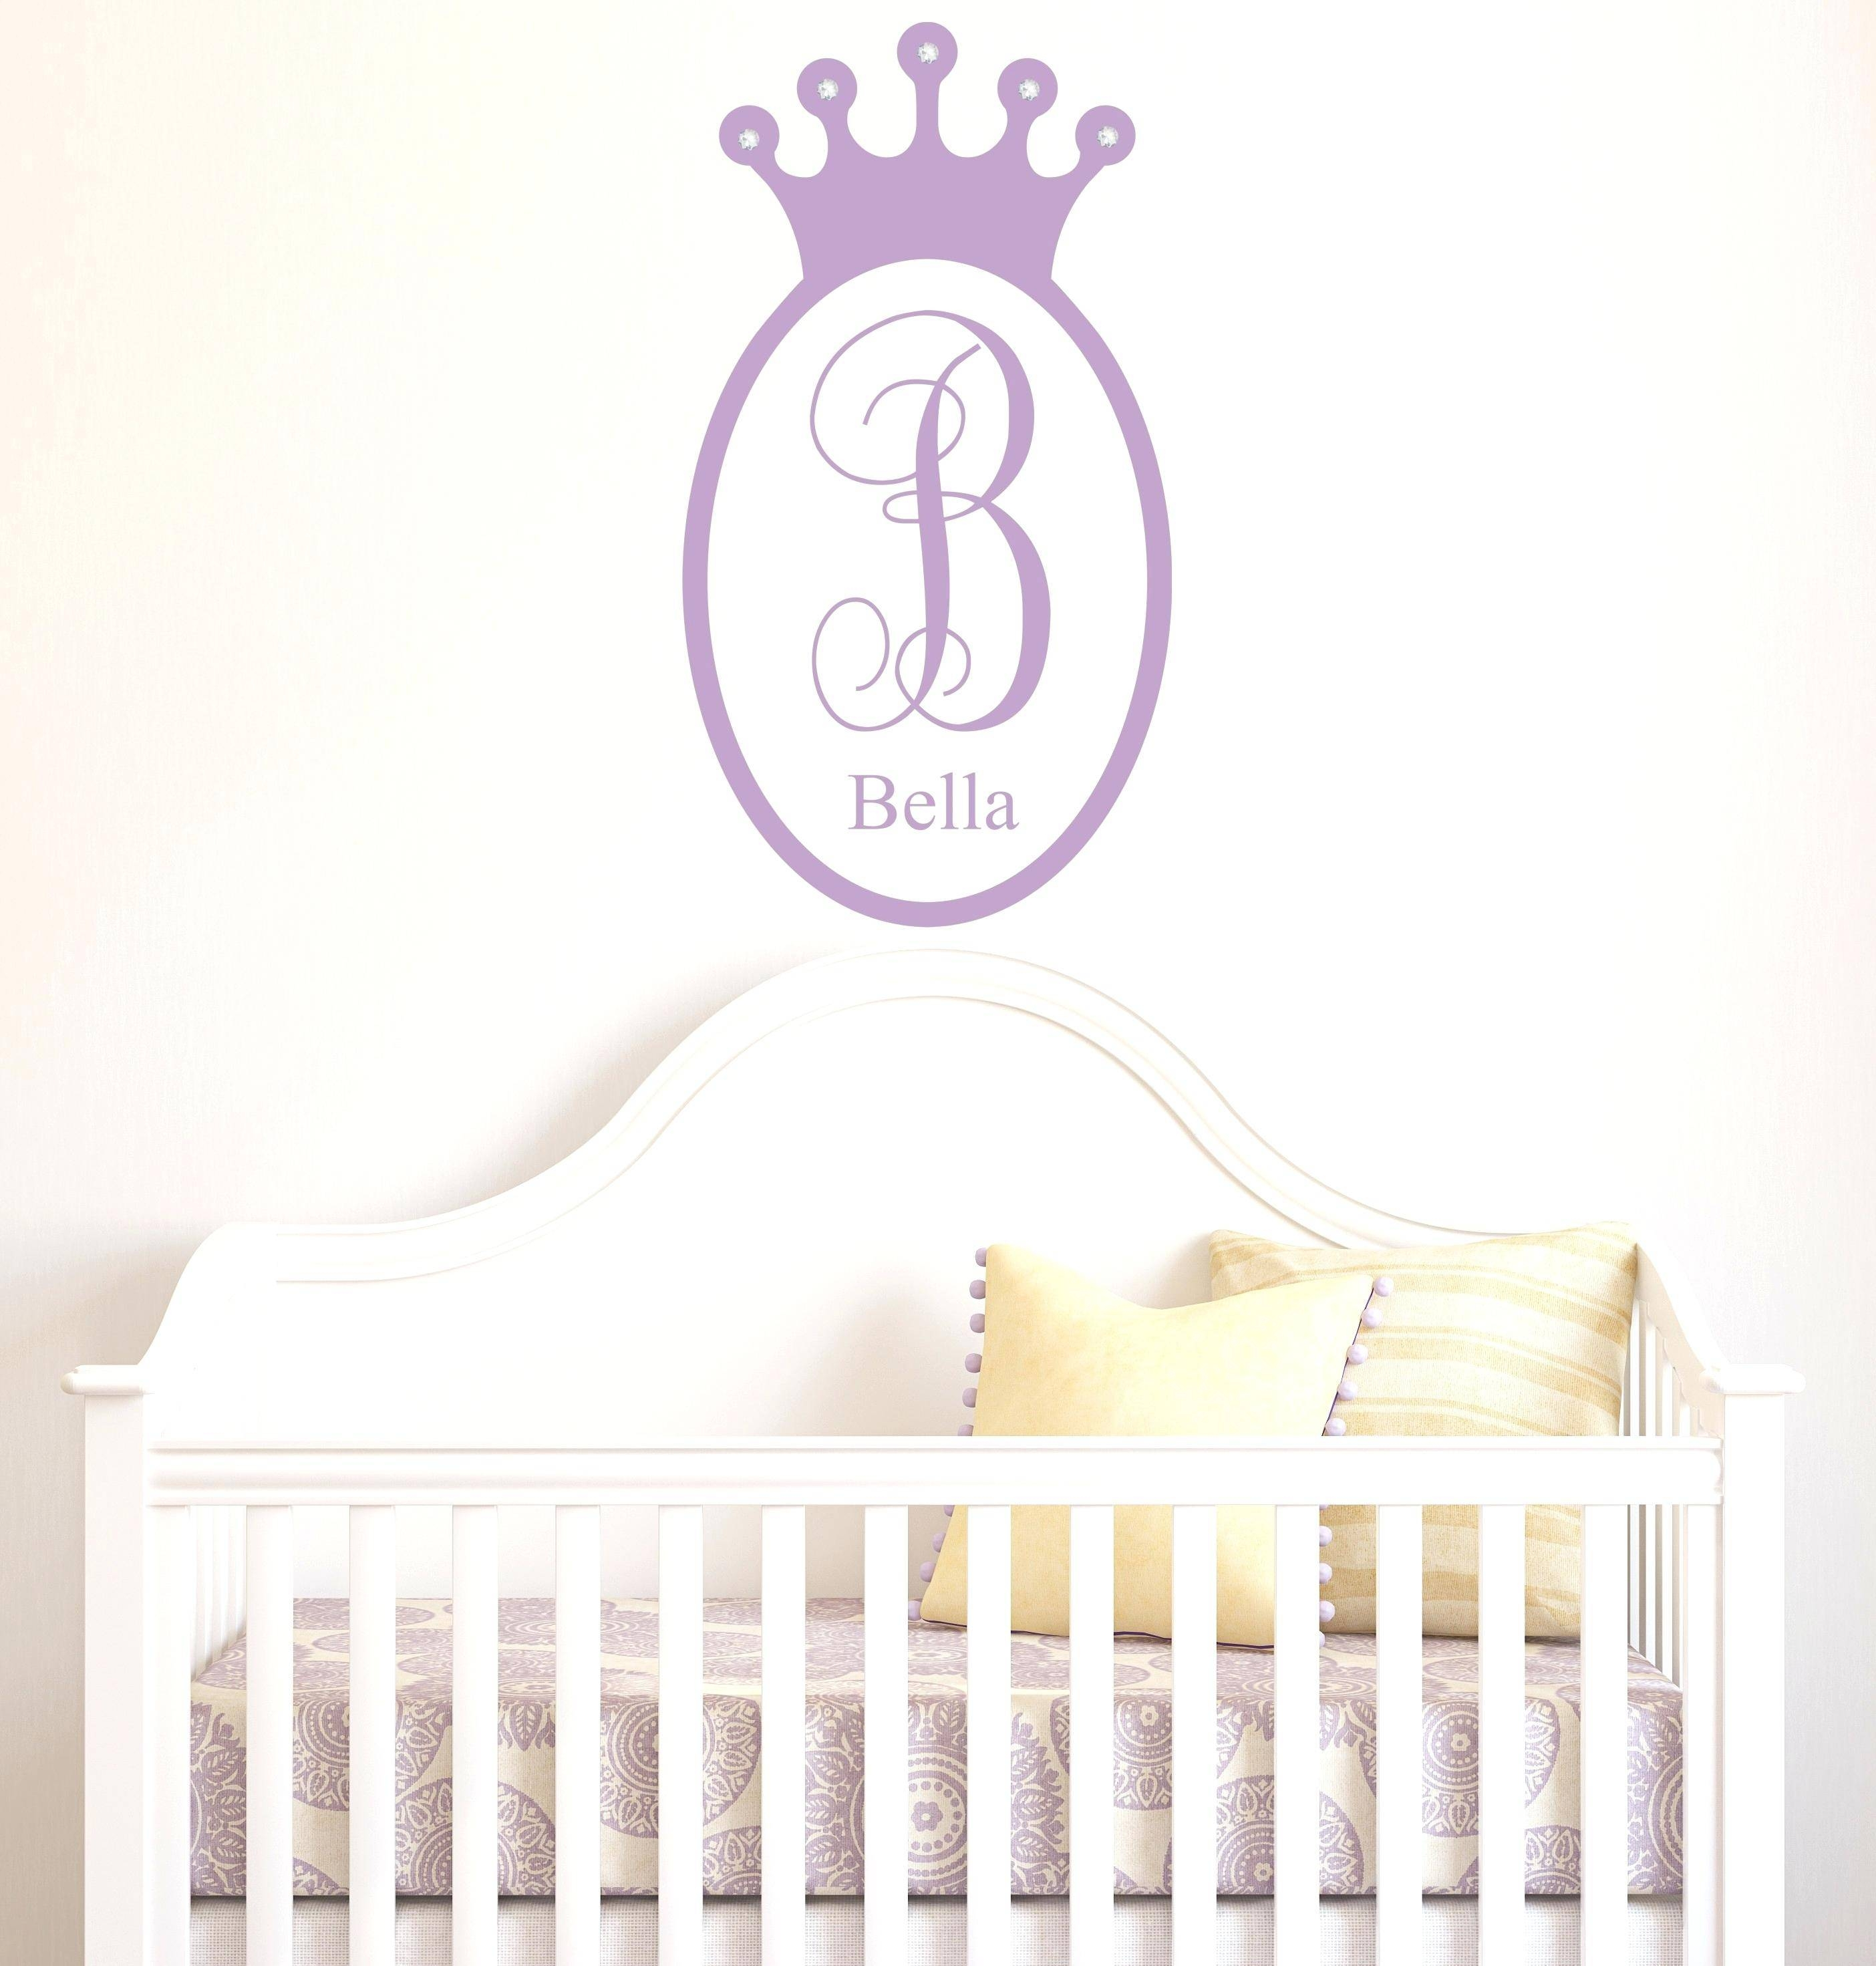 Wall Decor : Cream Pink Princess Crown 3d Wall Art Decor Wall Throughout Most Up To Date 3d Princess Crown Wall Art Decor (View 4 of 20)